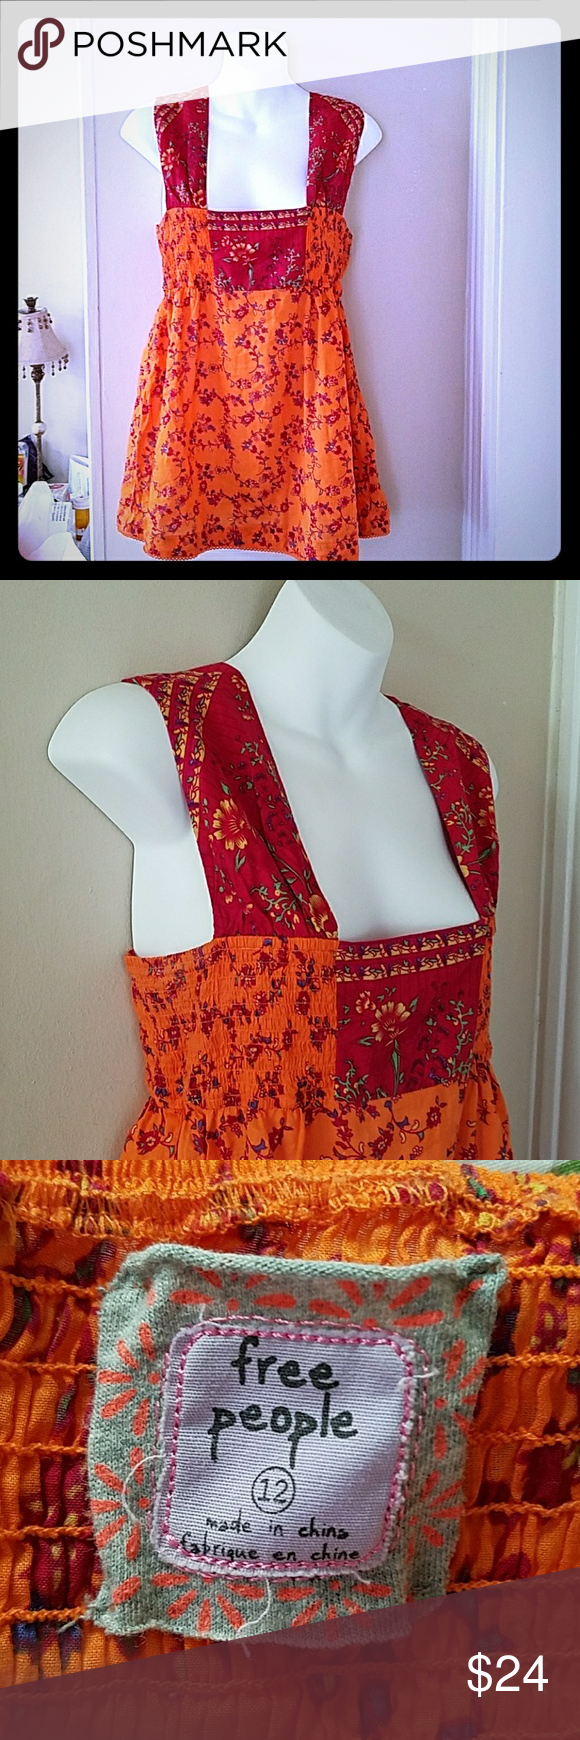 Free People Size 12(Medium)summer floral top. EUC Free People Size 12 red and orange floral hippie boho summer festival top. EUC. No defects. Cute!!! Free People Tops Tank Tops